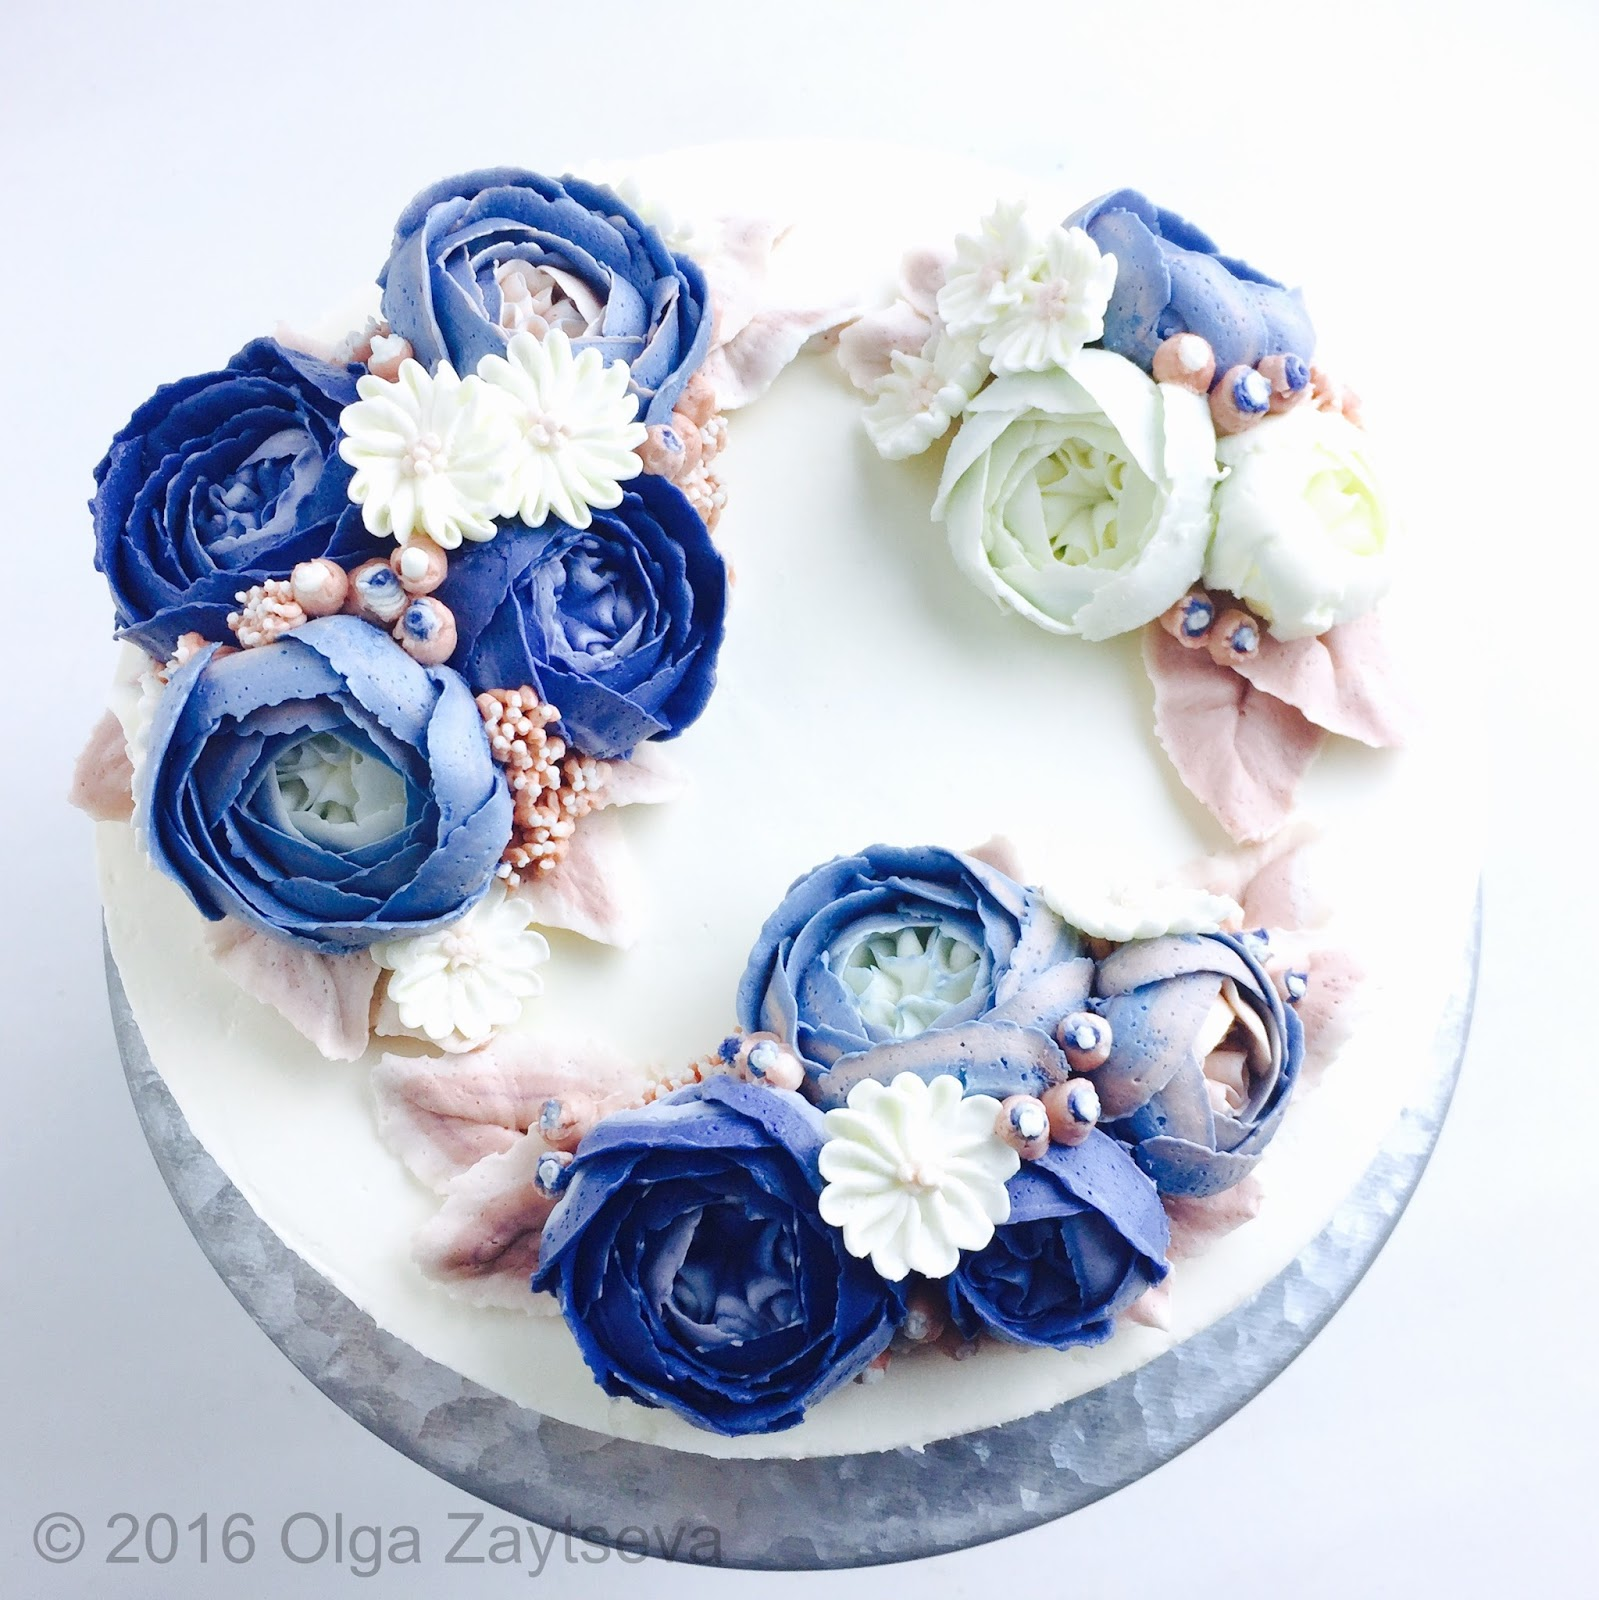 Buttercream blue roses wreath cake olga zaytseva learn how to make buttercream roses pipe blossoms and leaves and create this winter floral wreath cake in blue izmirmasajfo